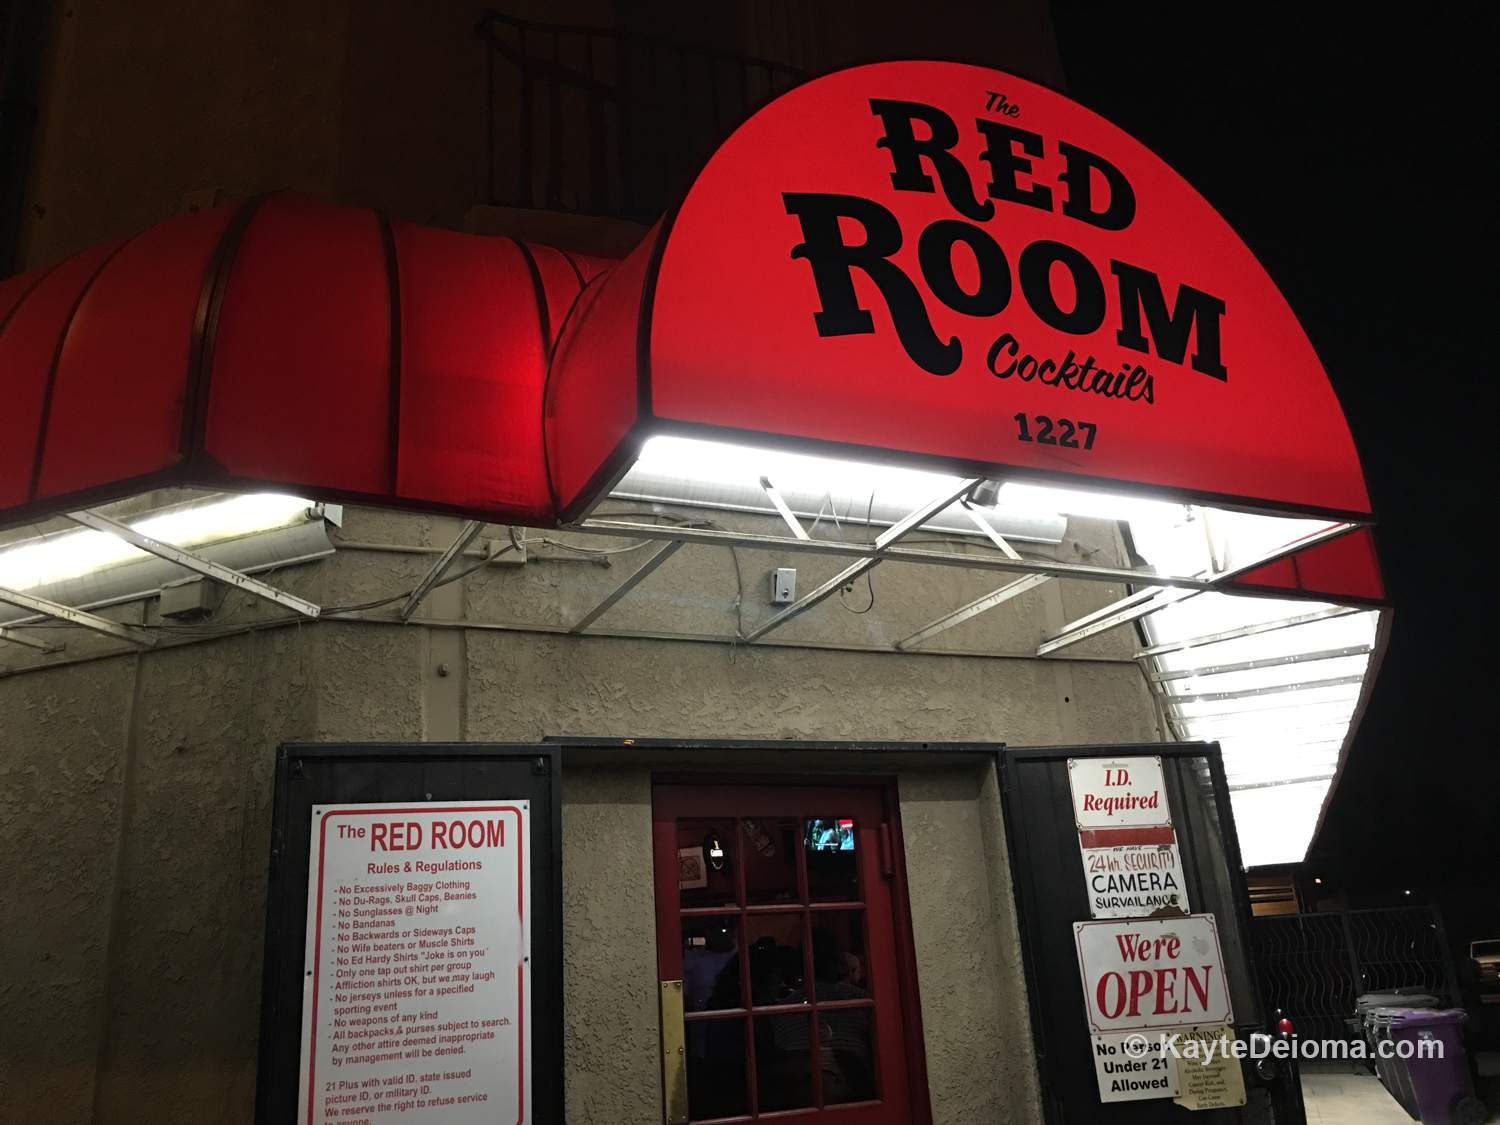 The Red Room on 4th Street in Long Beach, CA